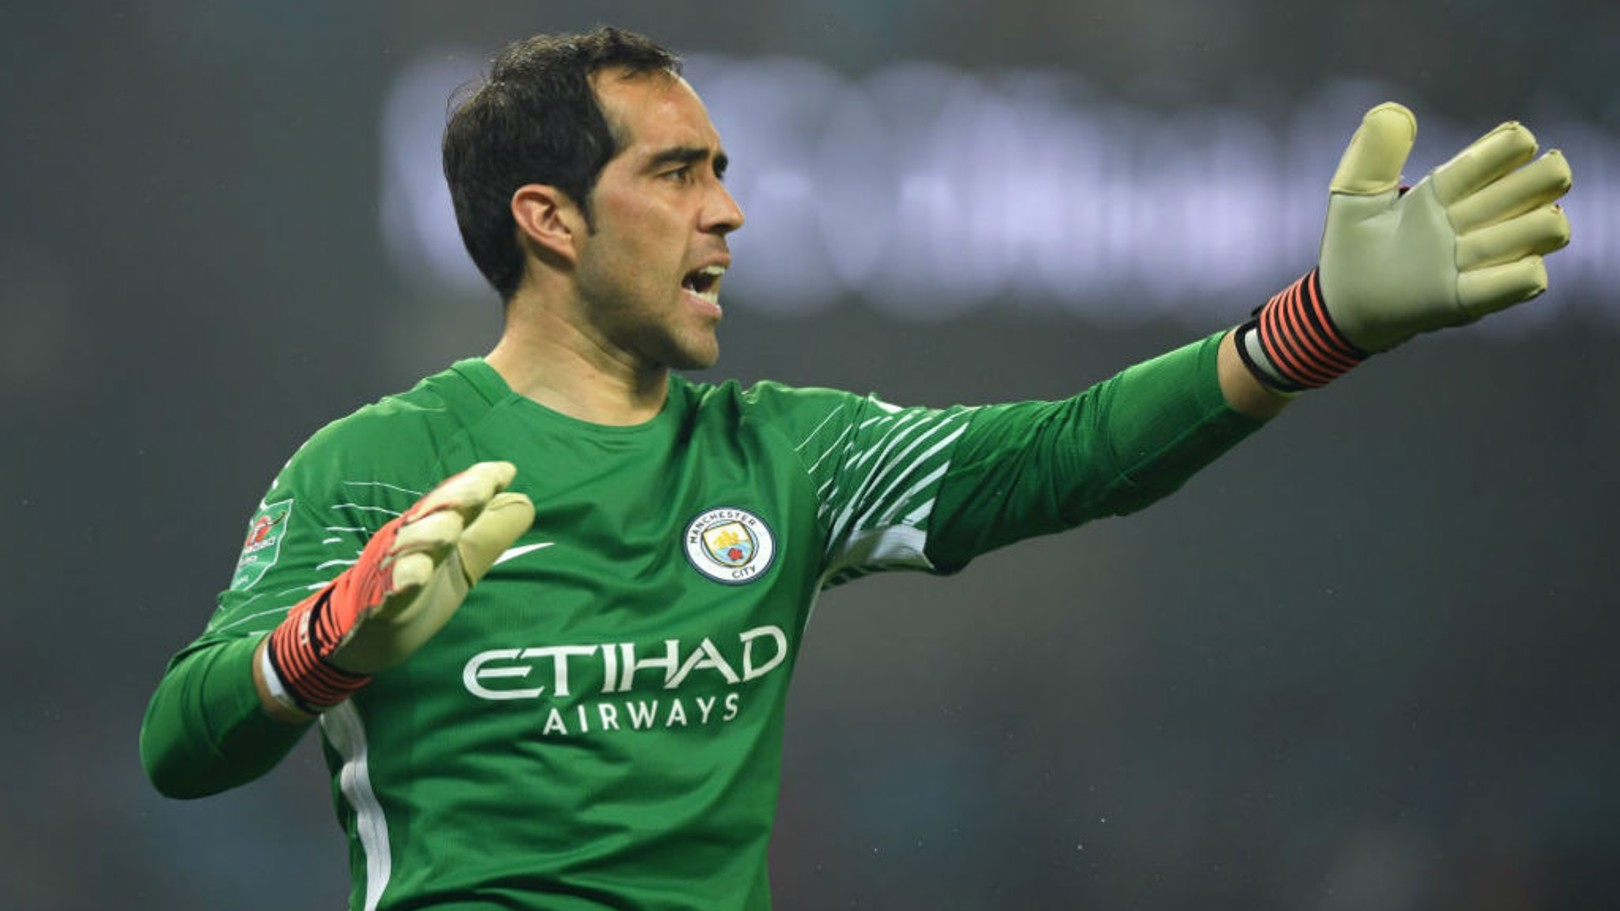 PENALTY KILLER: Bravo is a specialist from 12 yards, says Gundogan